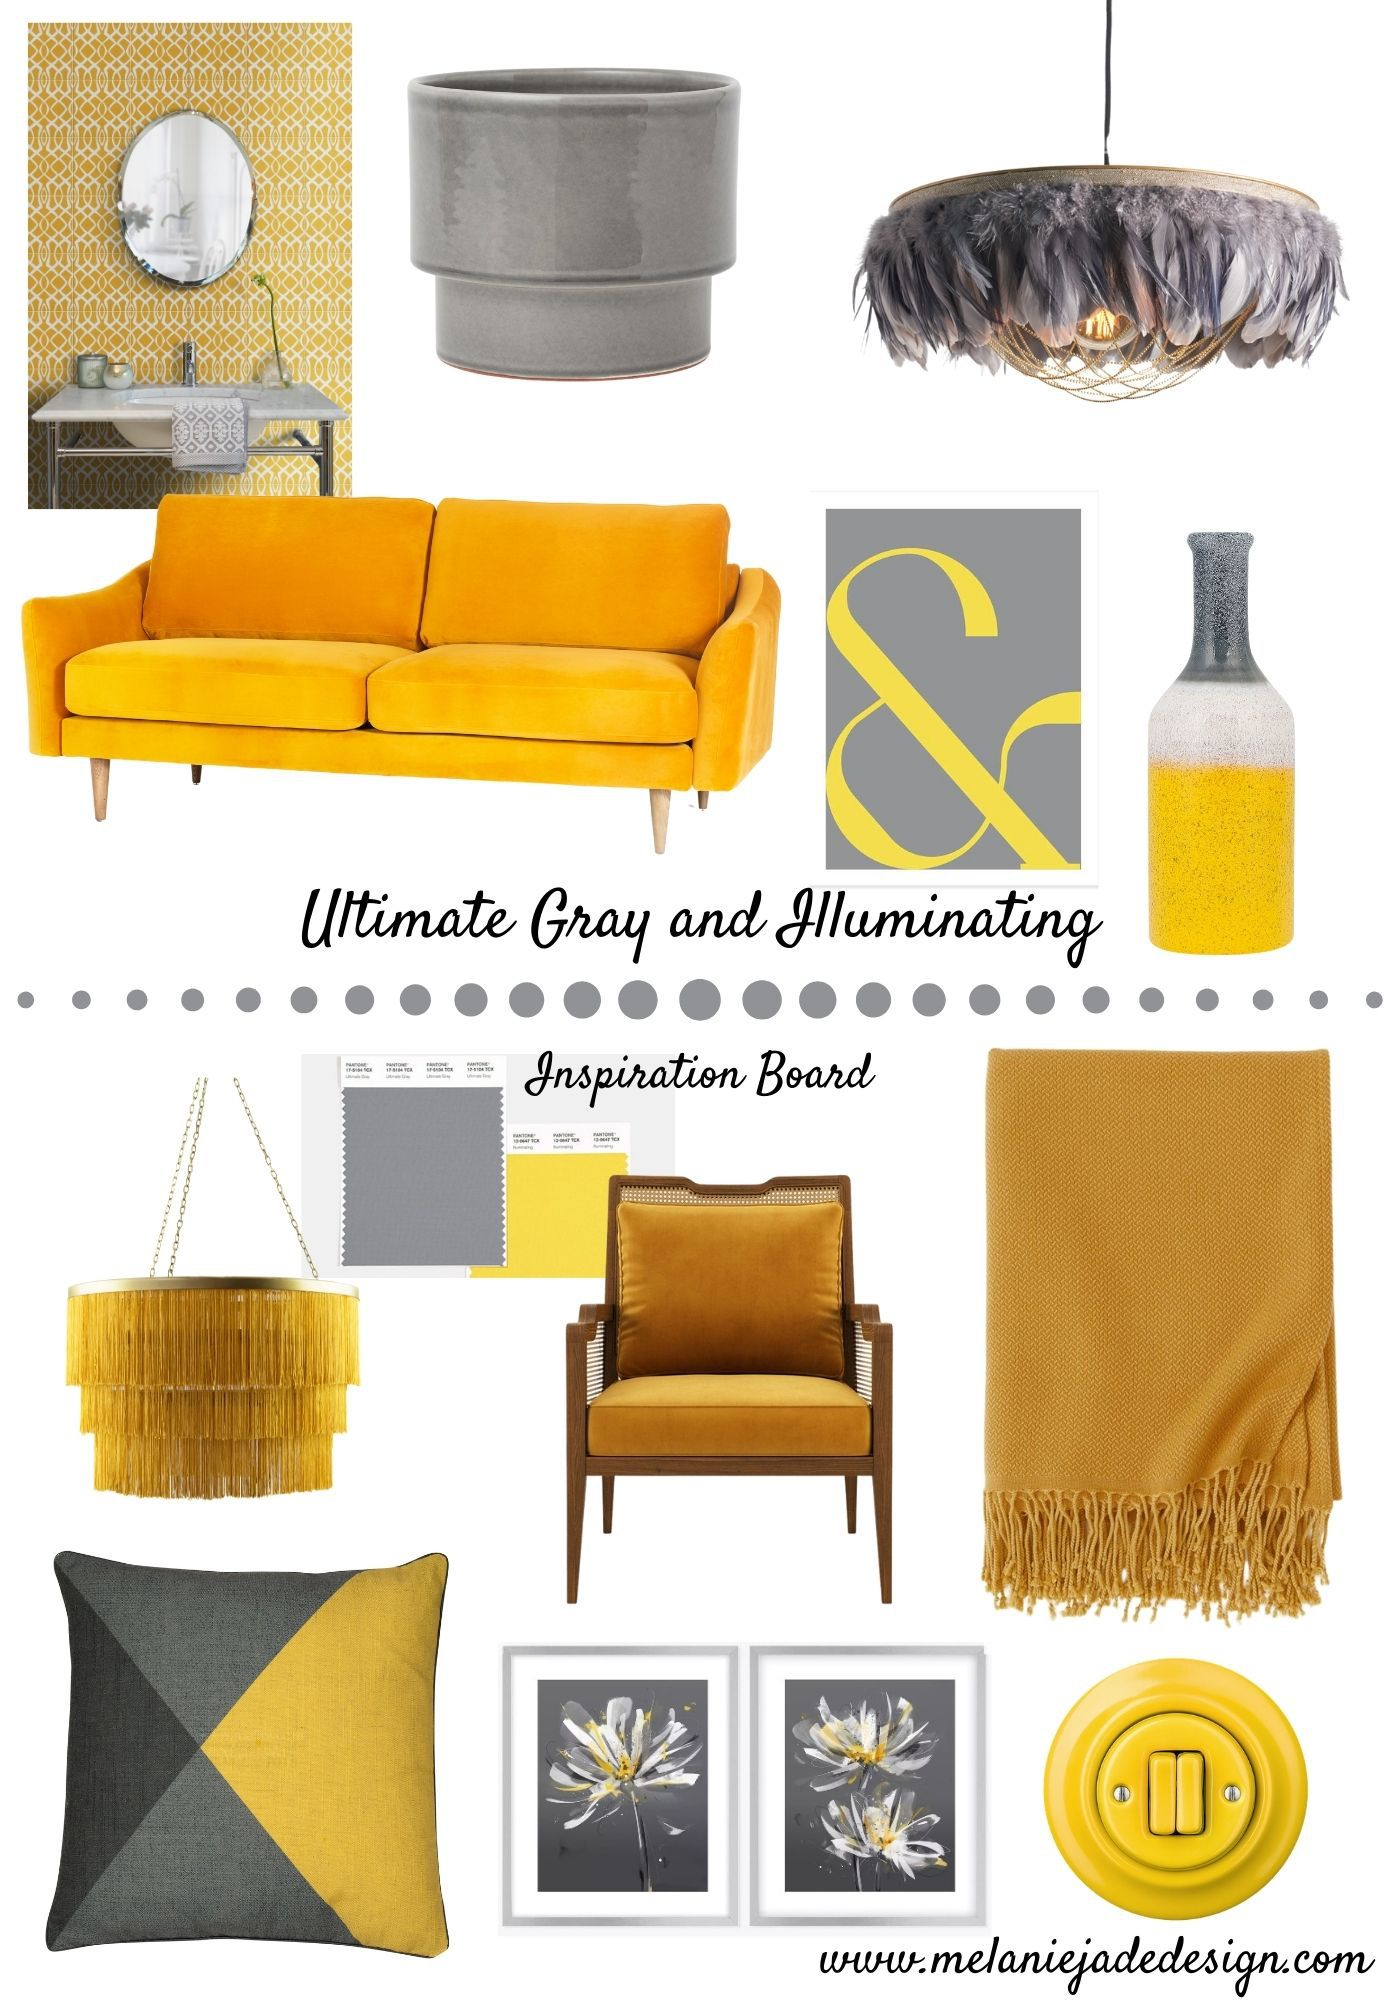 Ultimate gray and illuminating mood board